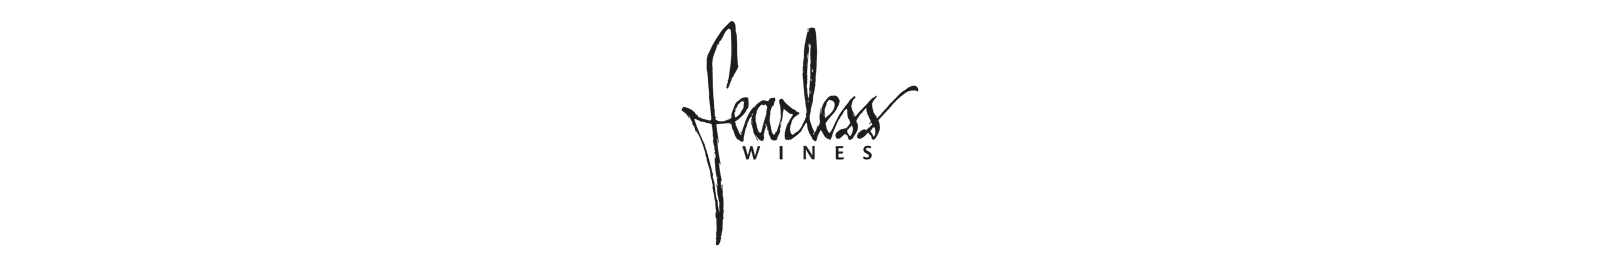 Fearless Wines.png